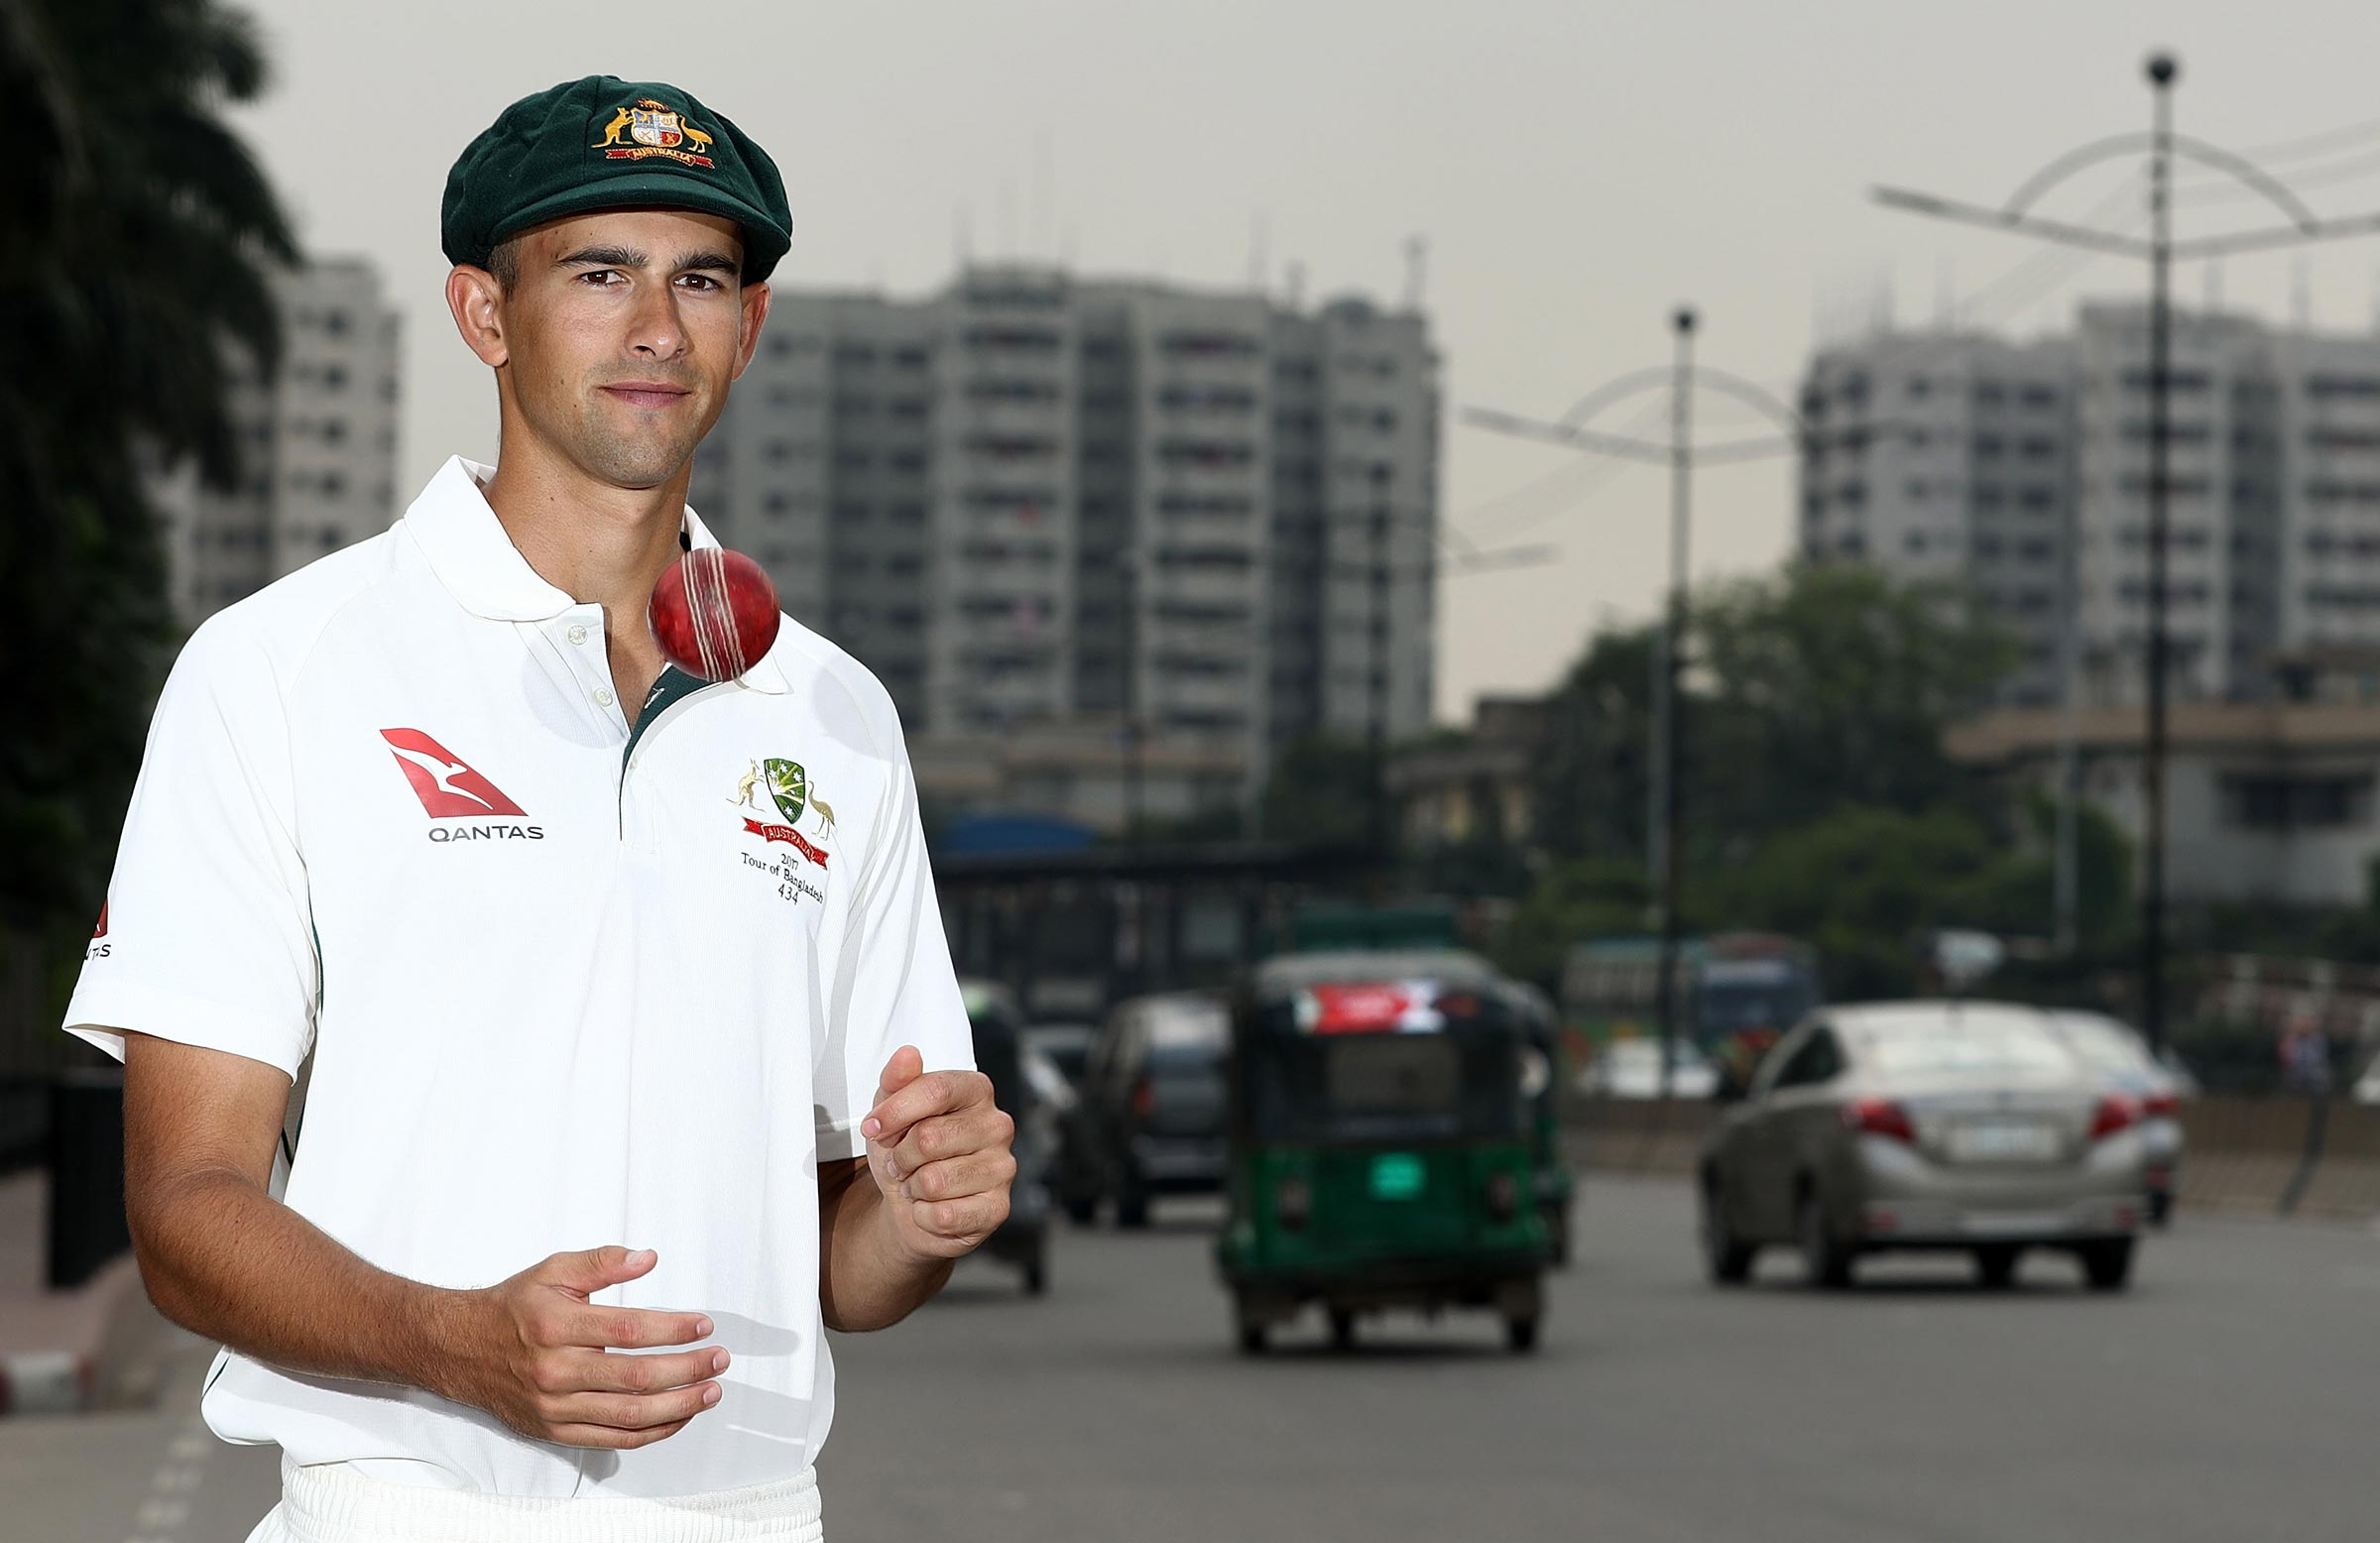 O'Keefe to replace injured Hazlewood in Test squad